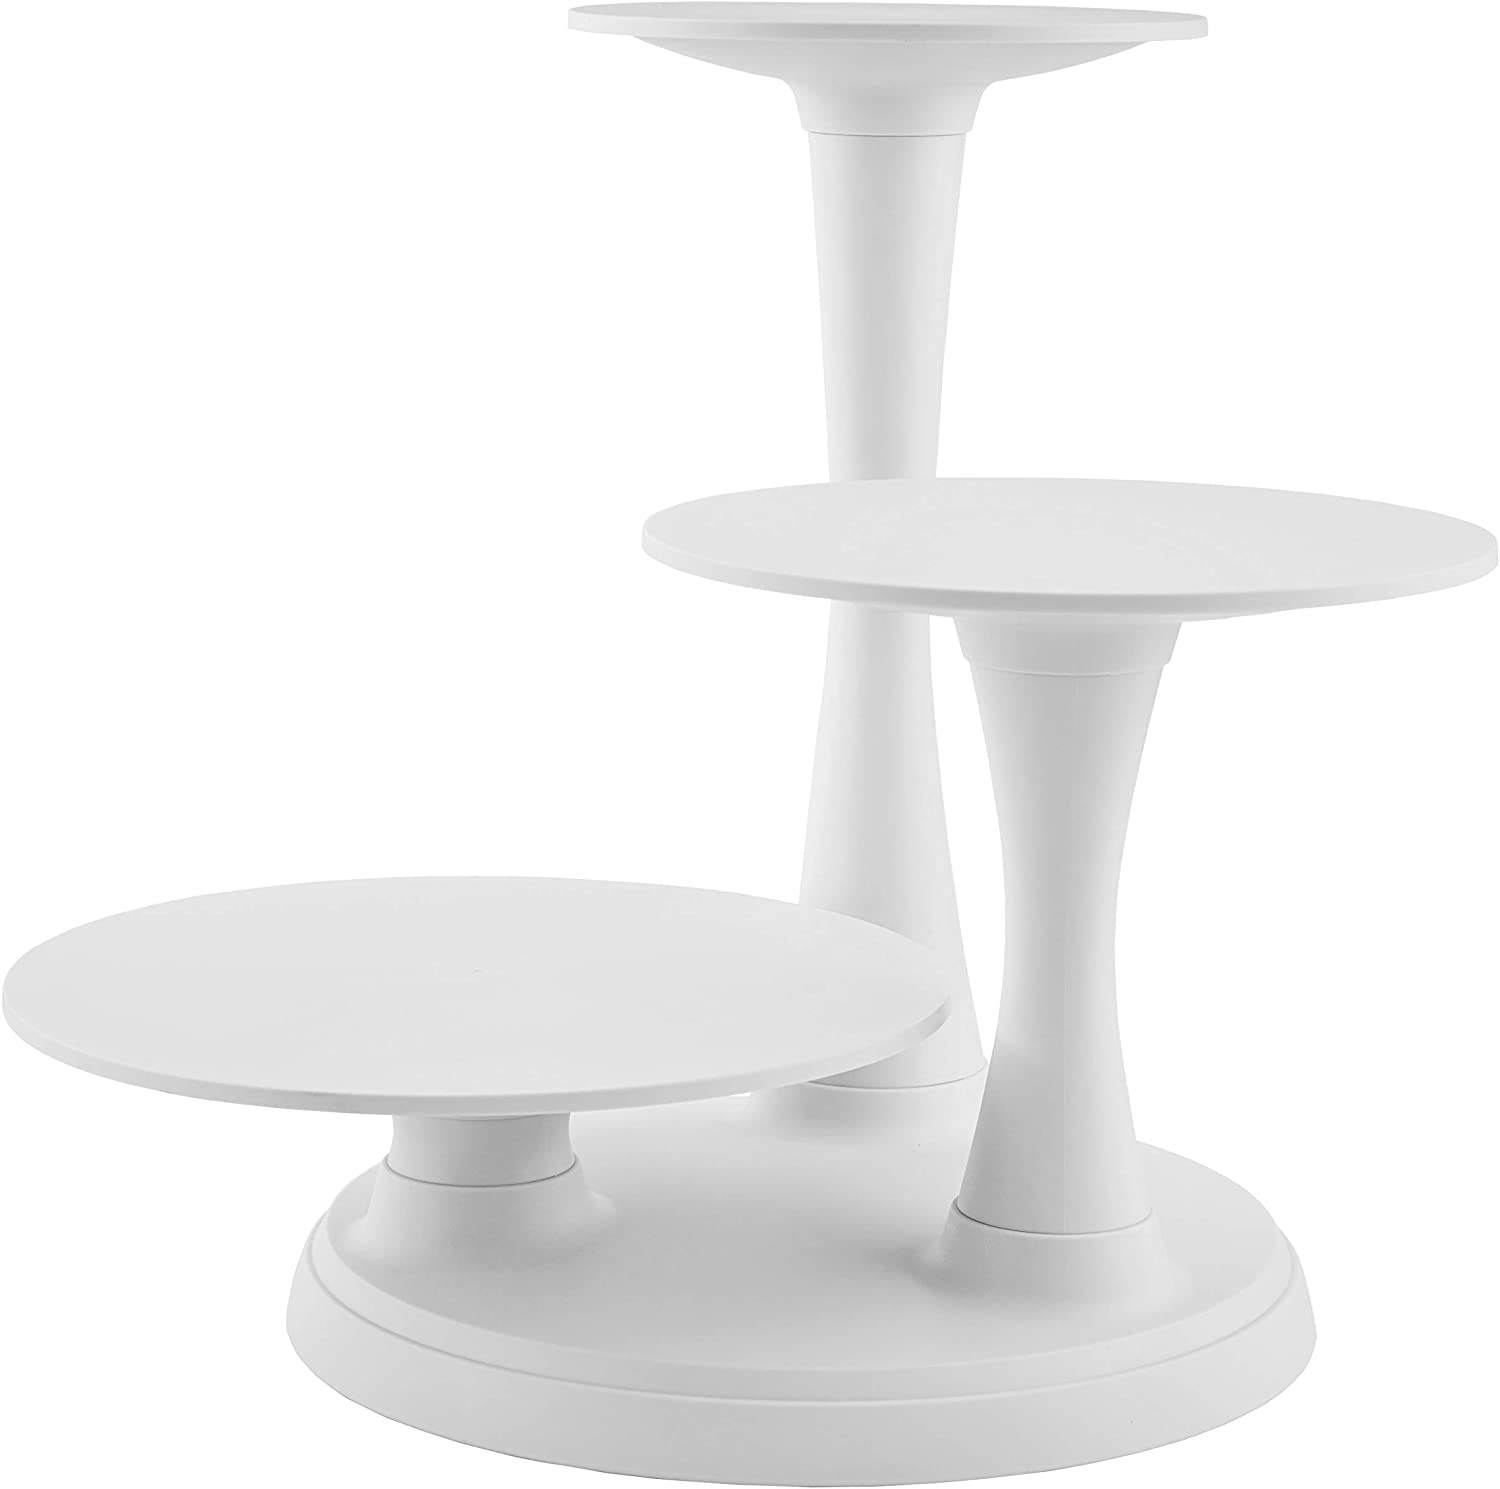 3 Tier Pillar Style Cake and Dessert Stand Great for Displaying Cakes